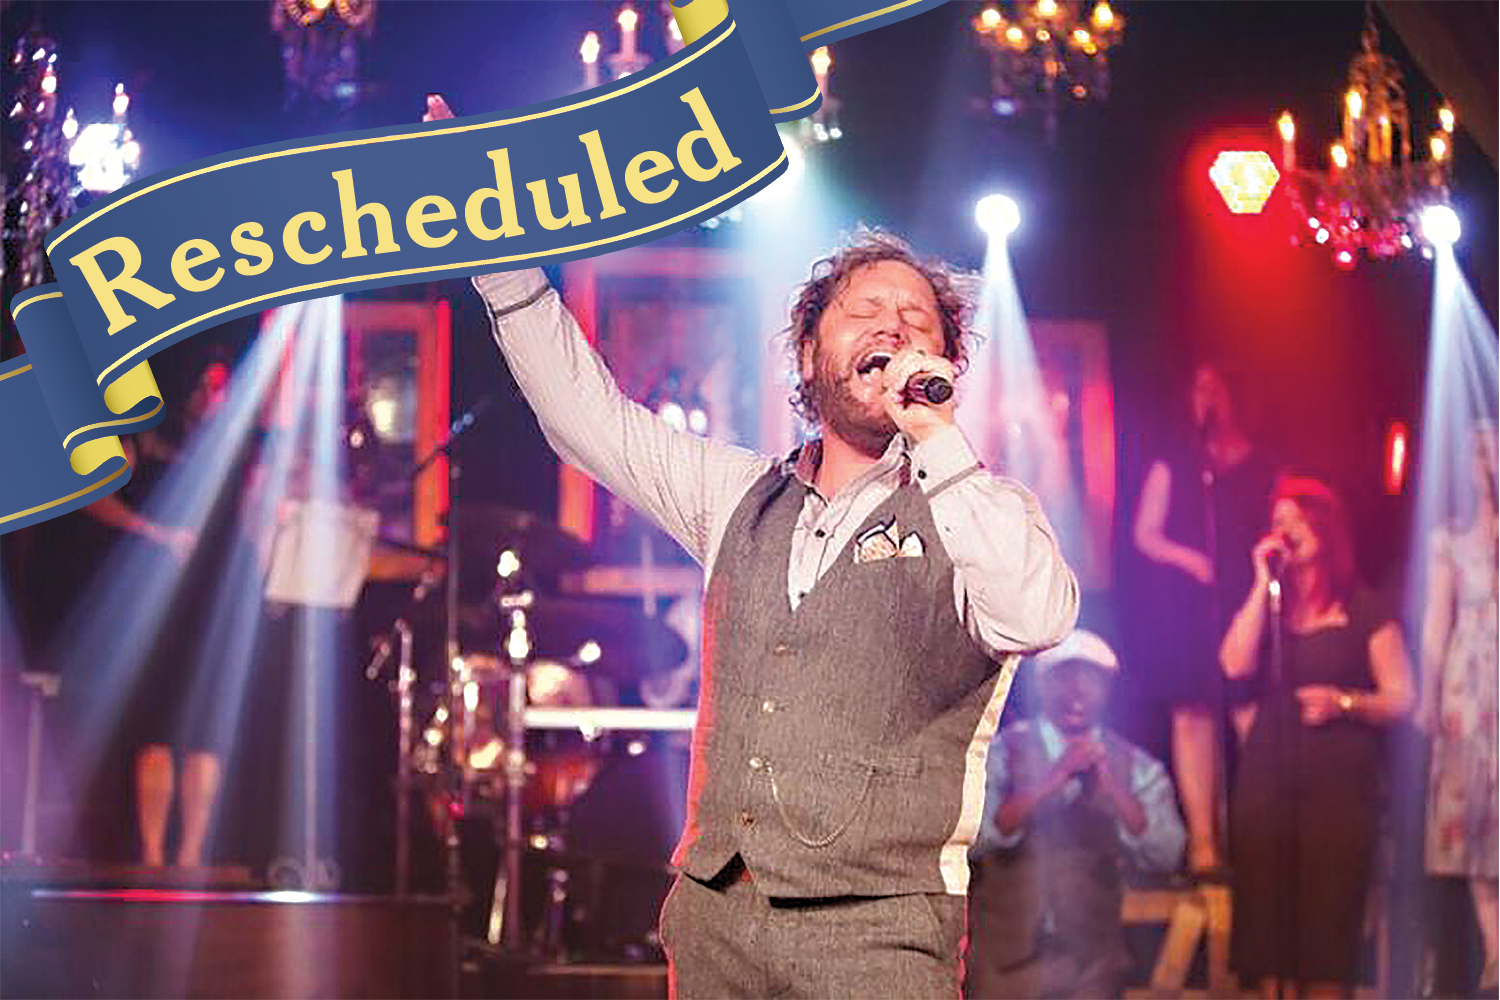 DavidPhelps_Rescheduled.jpg